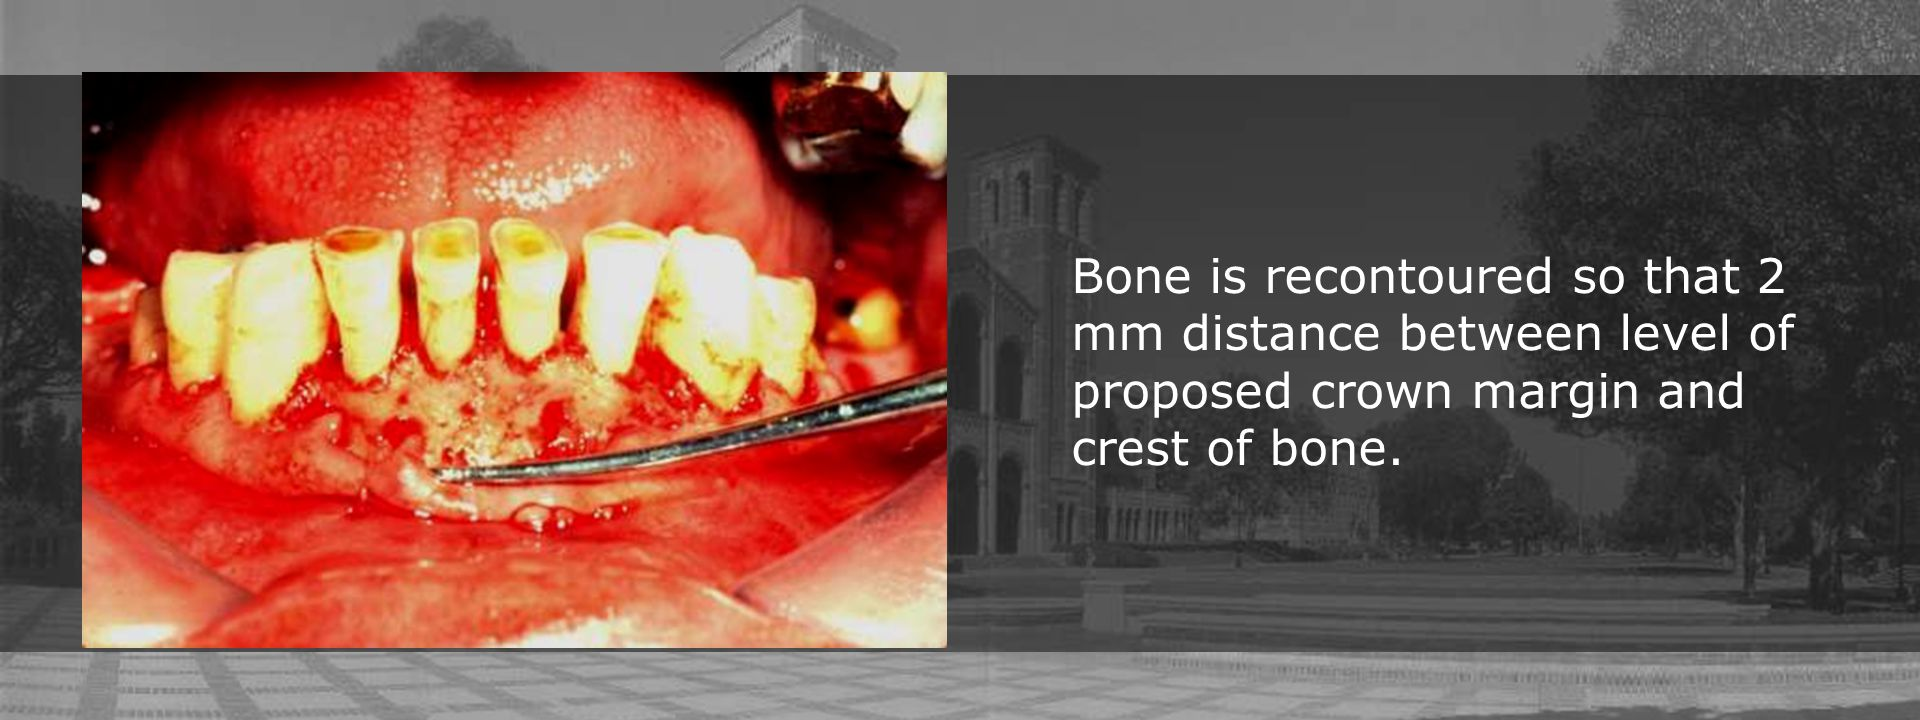 Bone is recontoured so that 2 mm distance between level of proposed crown margin and crest of bone.